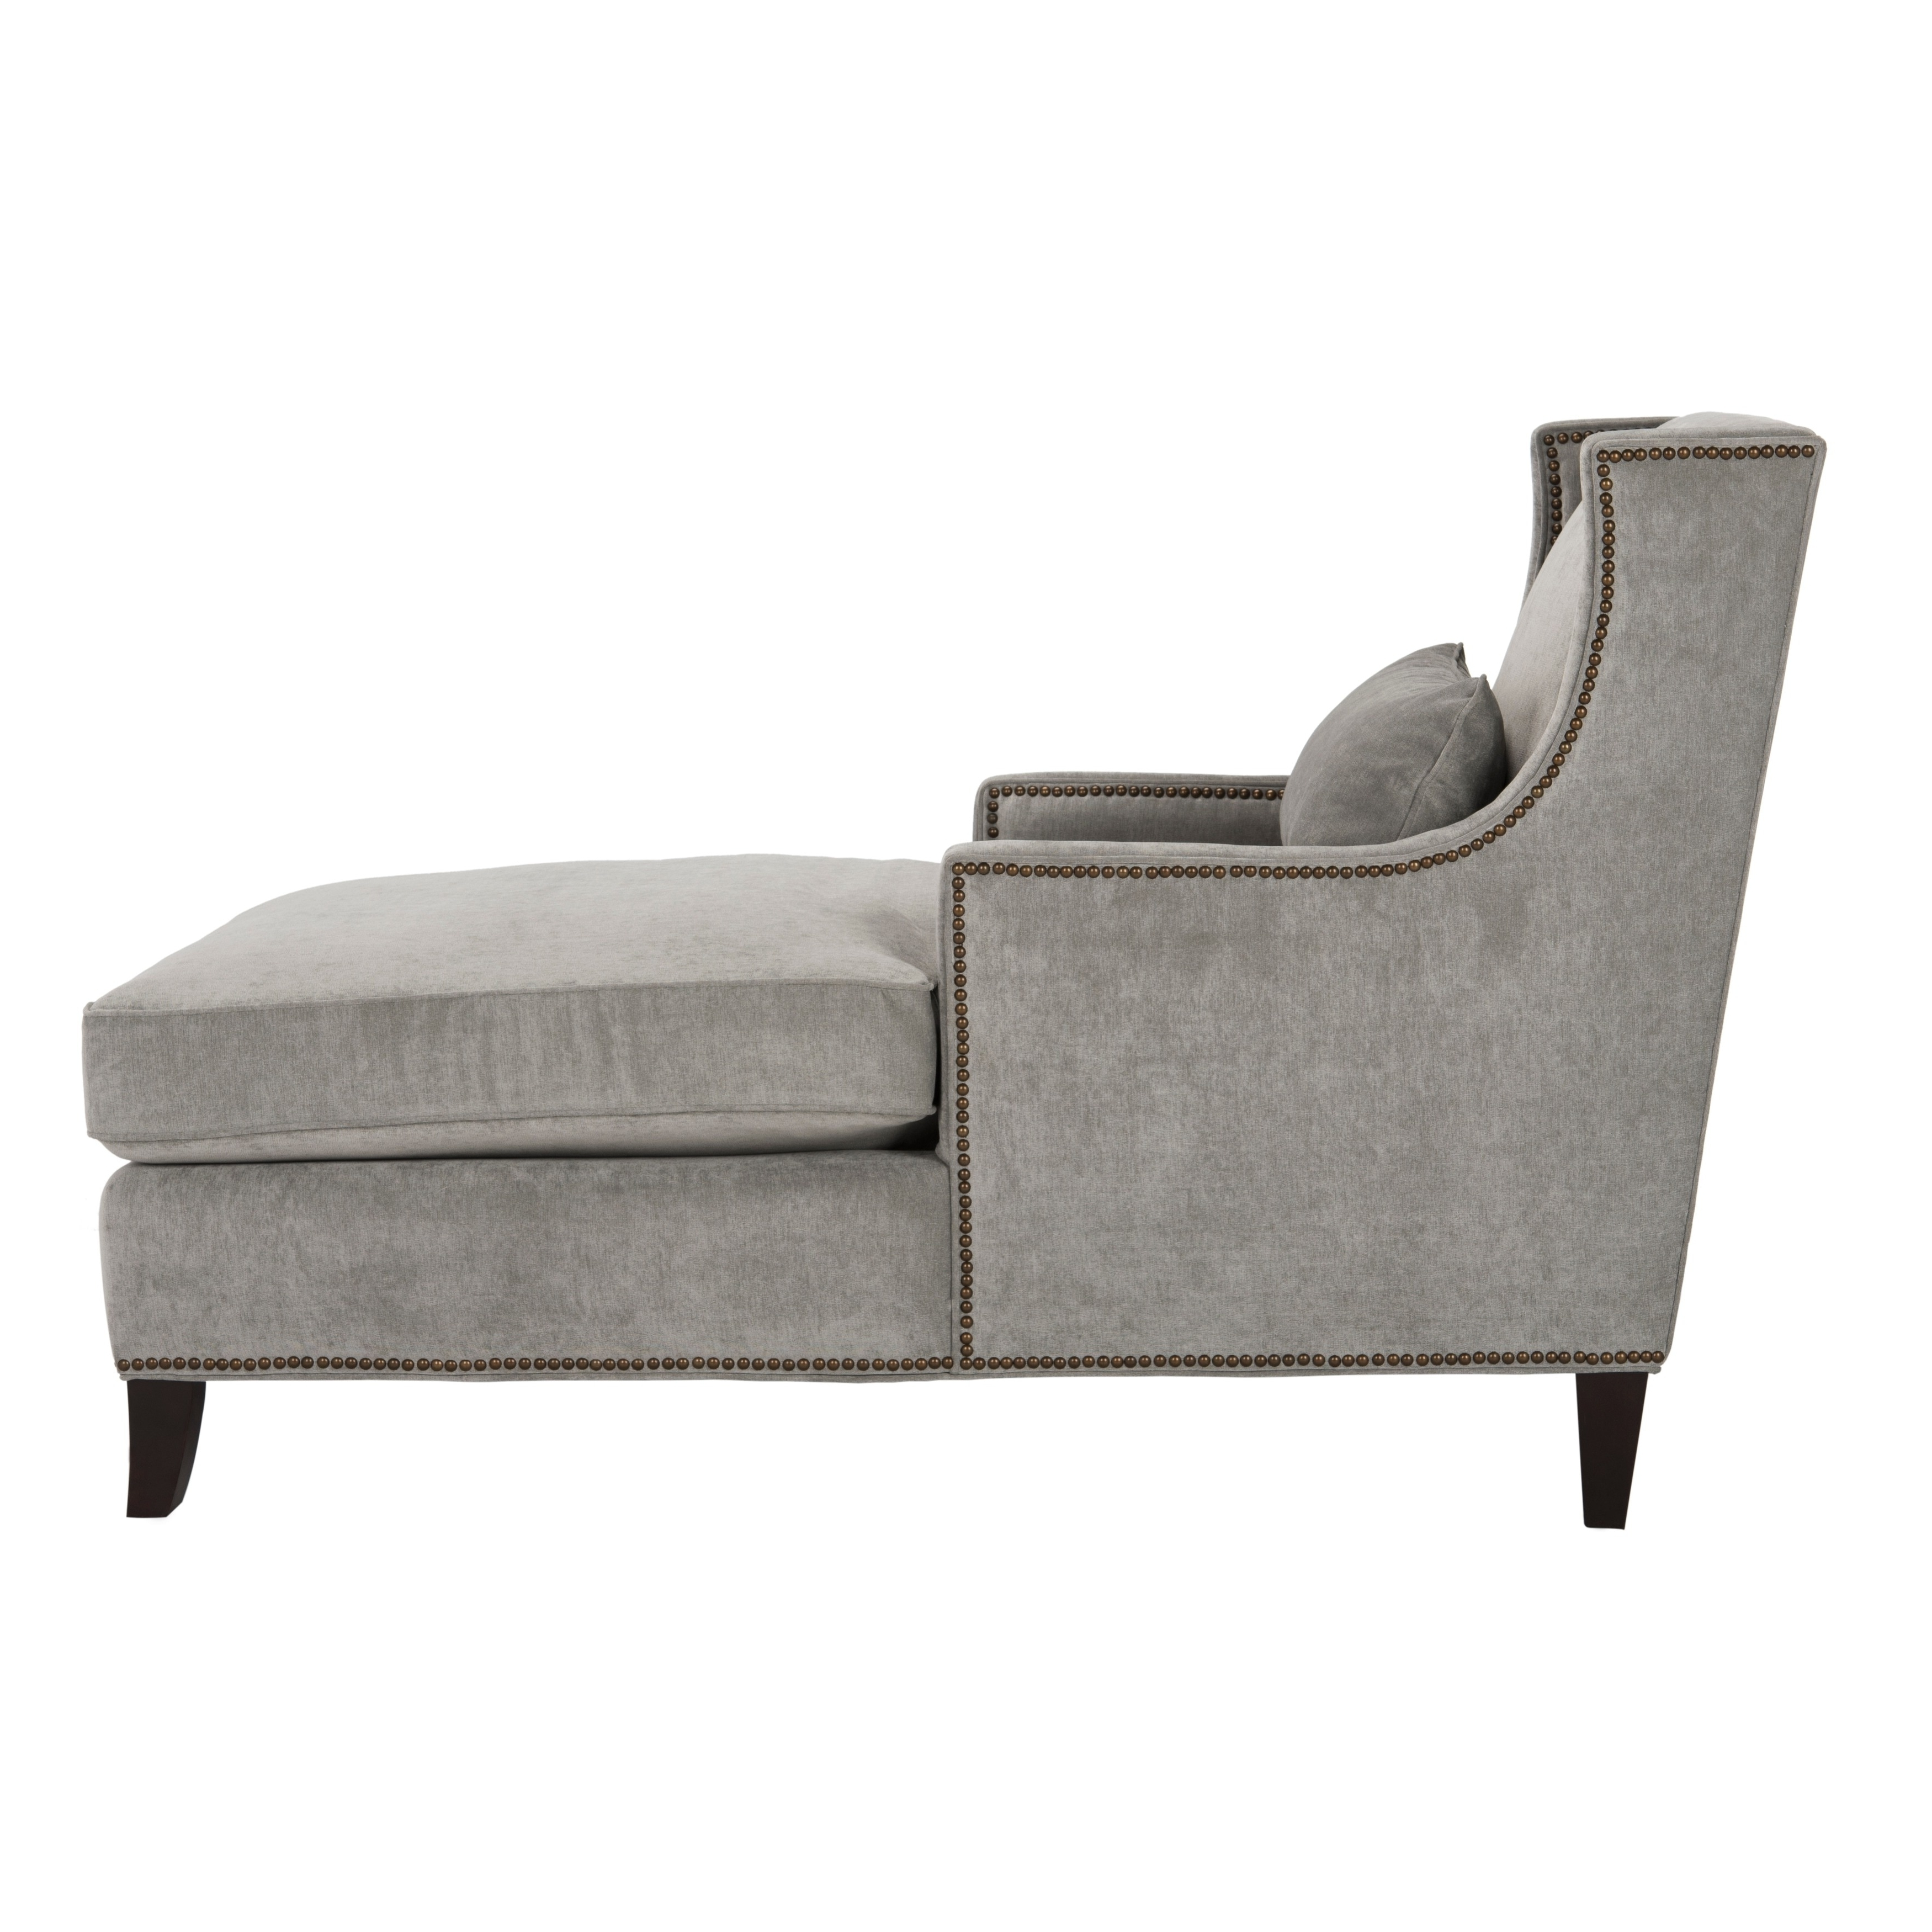 2017 Safavieh Couture High Line Collection Vitali Grey Velvet Chaise Regarding High End Chaise Lounge Chairs (View 3 of 15)